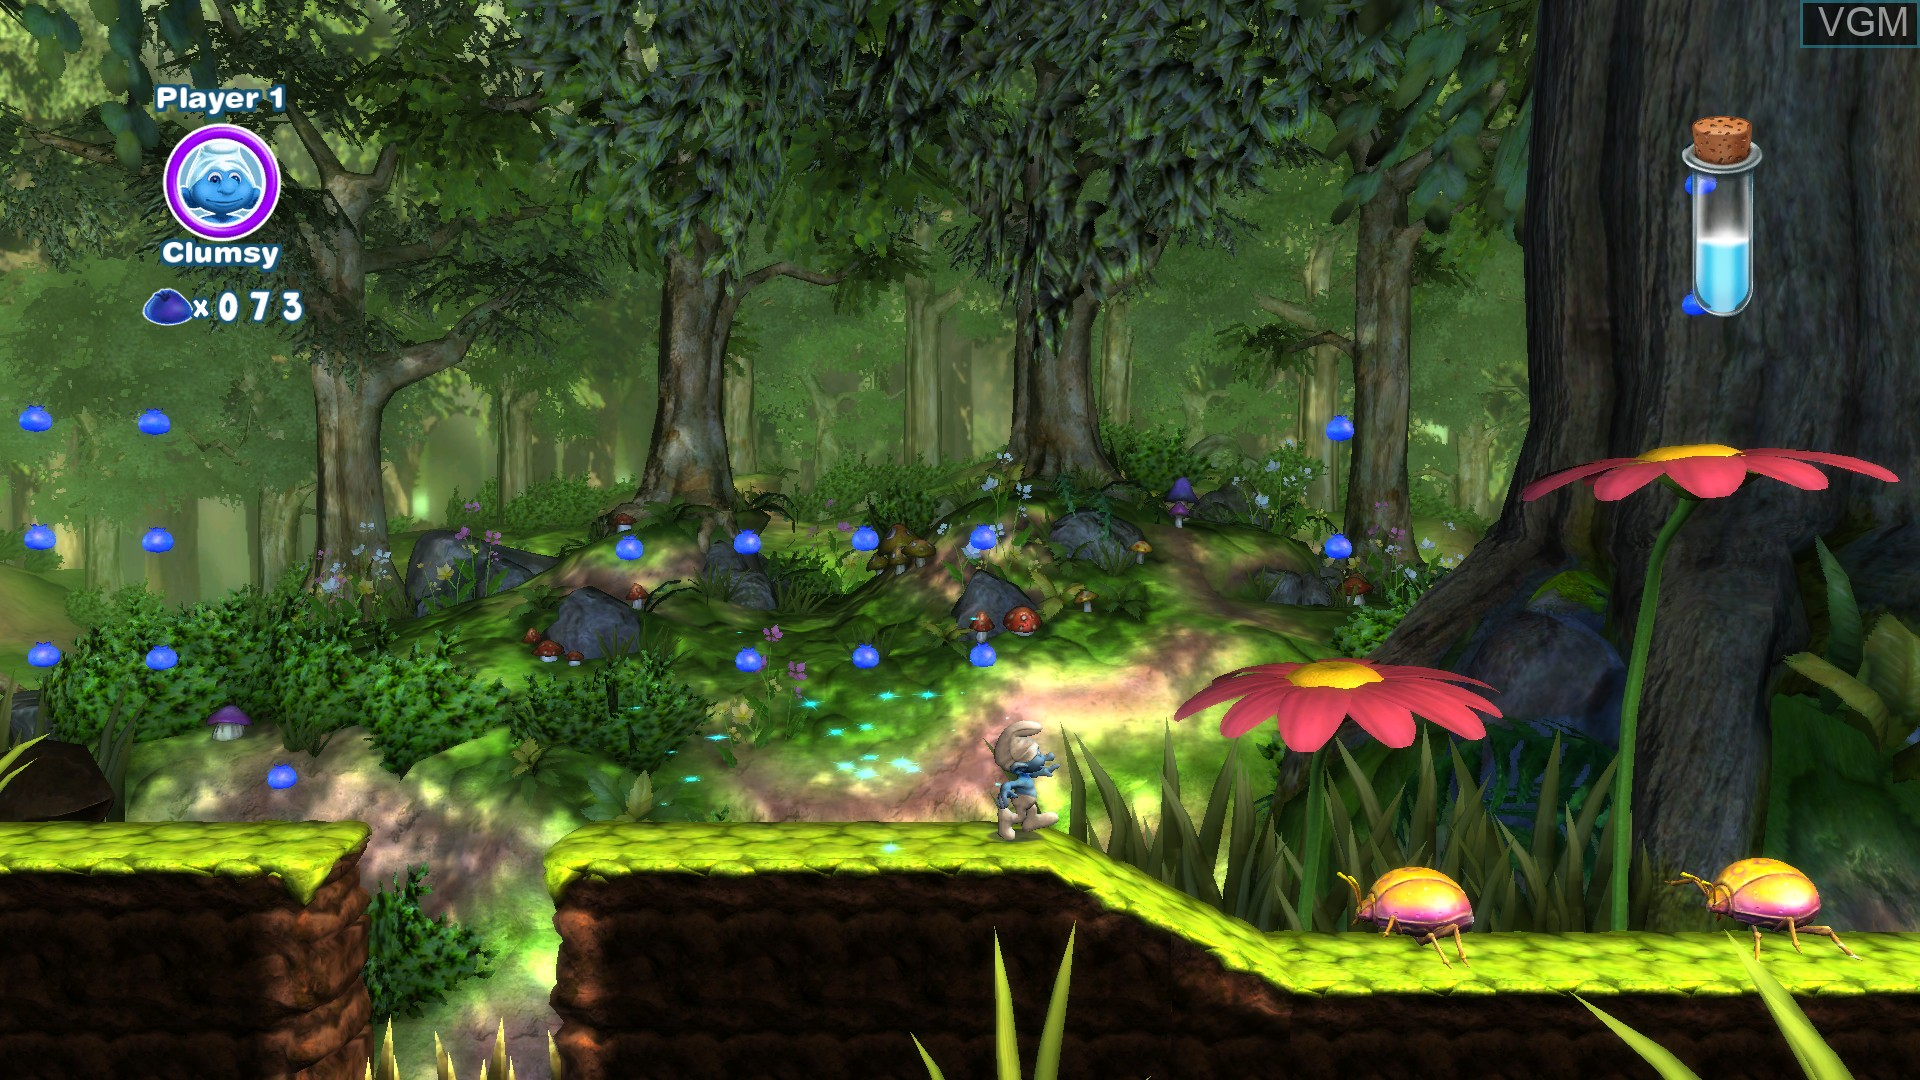 In-game screen of the game Smurfs 2, The on Nintendo Wii U